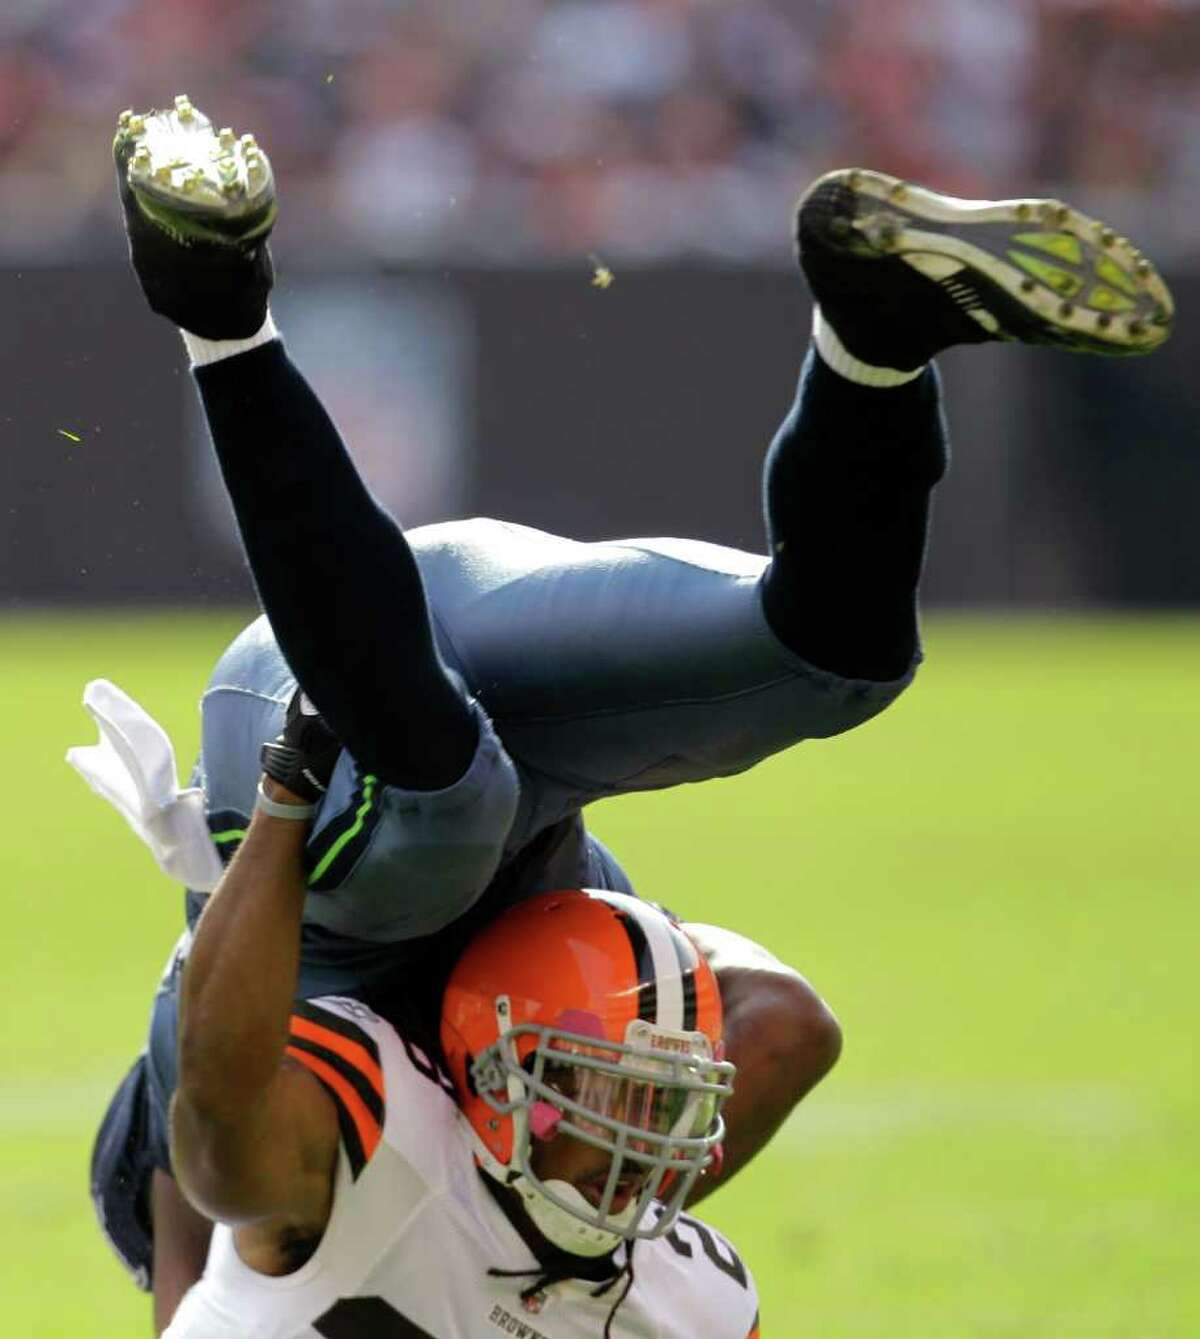 Cleveland Browns safety Usama Young, bottom, flips Seattle Seahawks tight end Anthony McCoy after a 3-yard pass in the third quarter of an NFL football game Sunday, Oct. 23, 2011, in Cleveland.